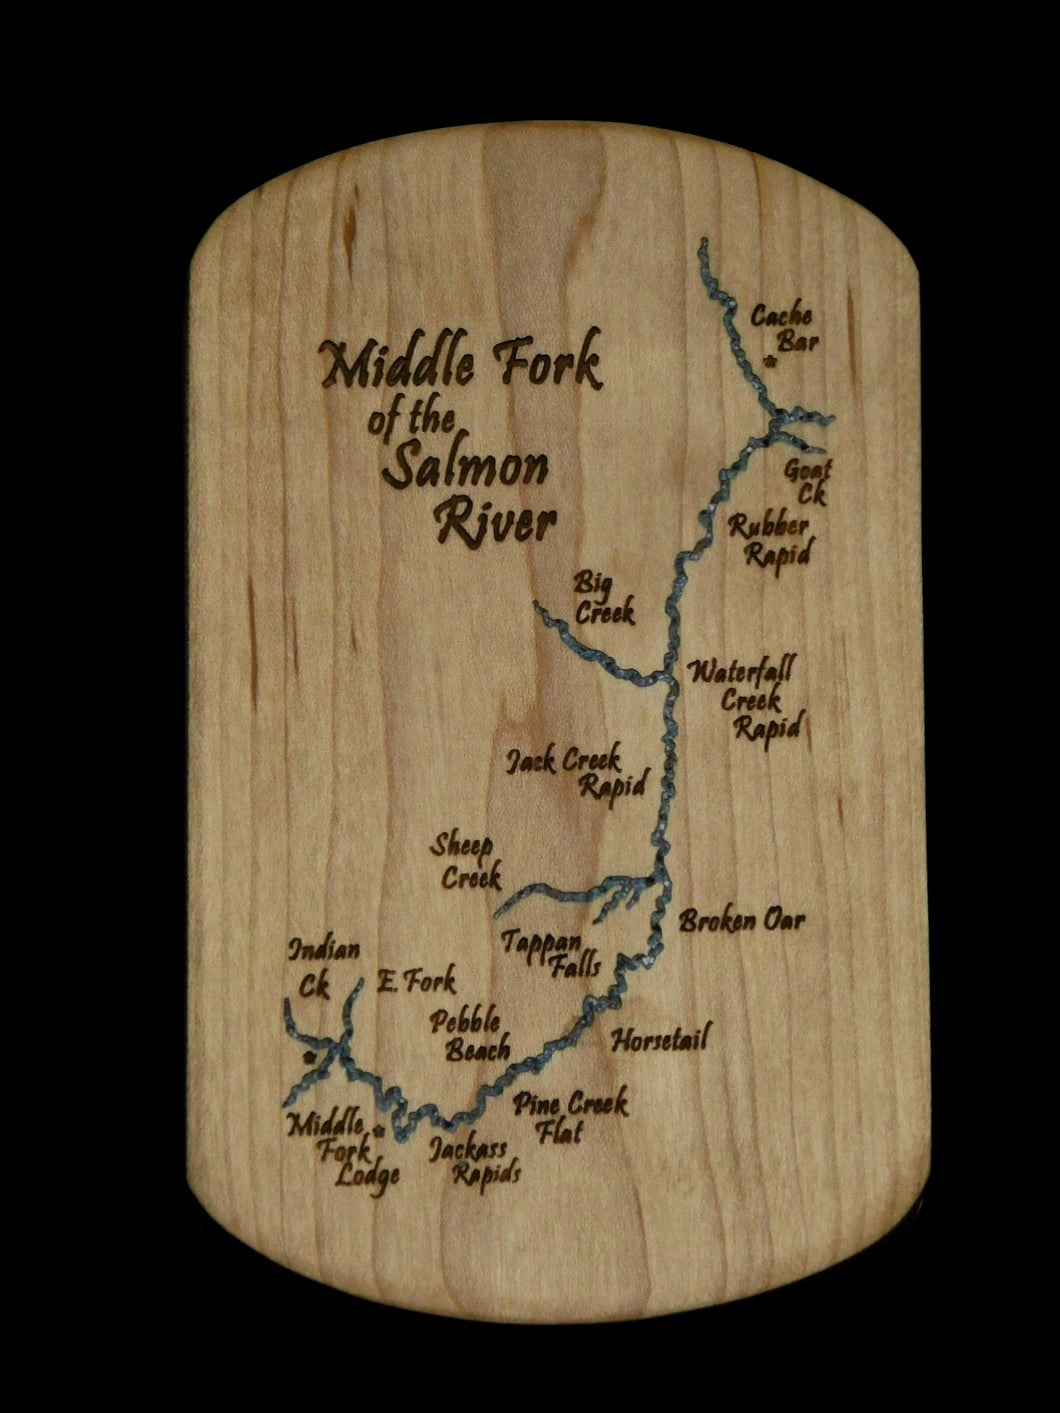 Salmon River Middle Fork Rafting Version